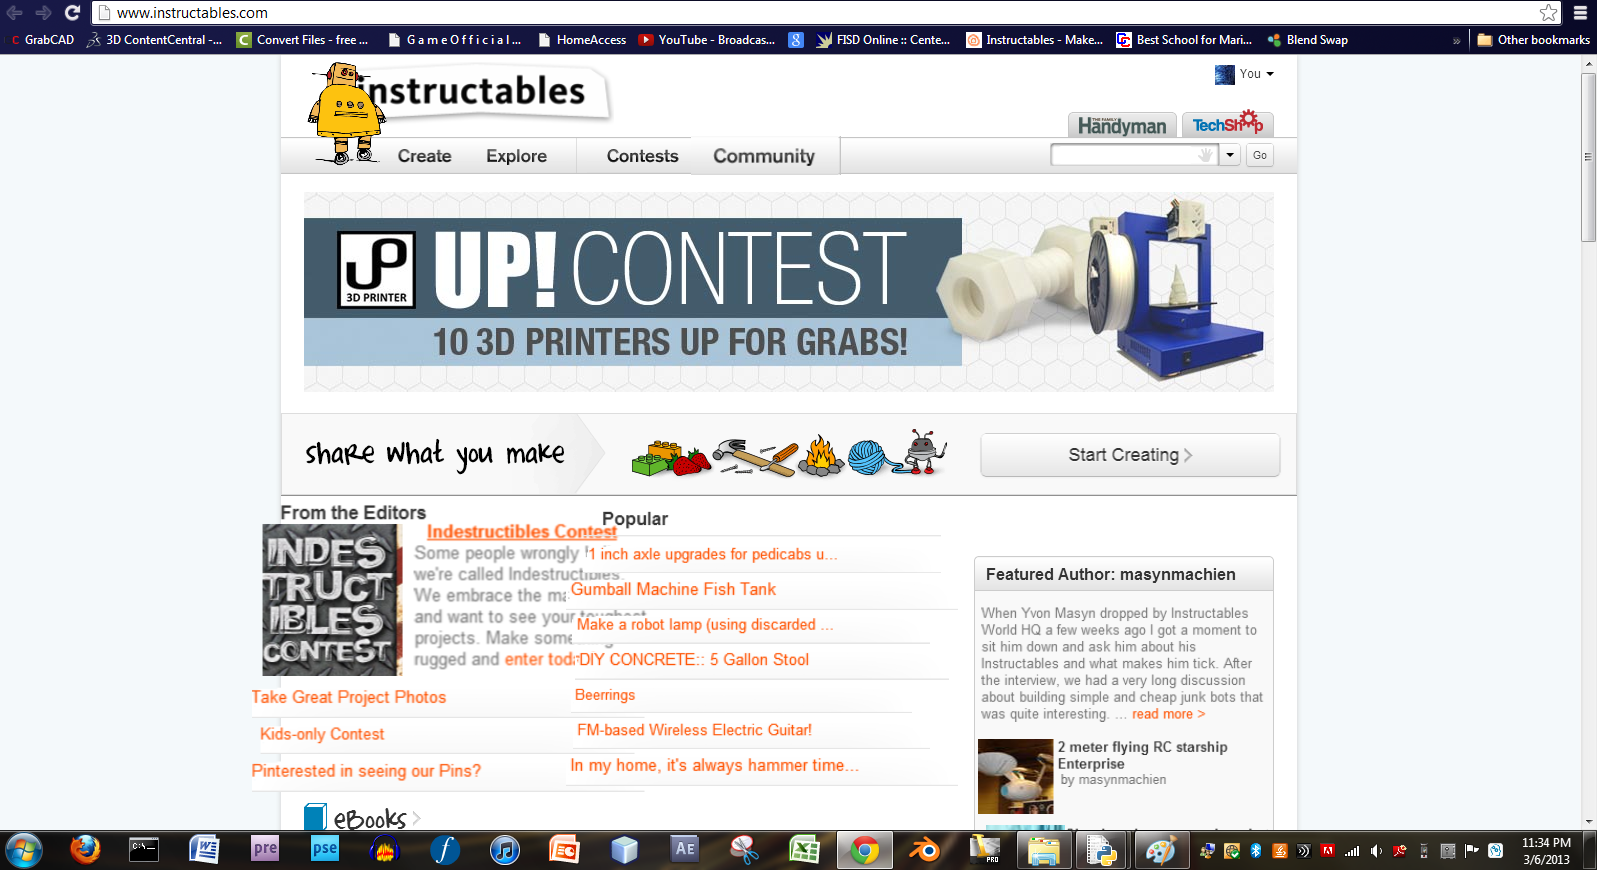 Harlem Shake Instructables (or any site)